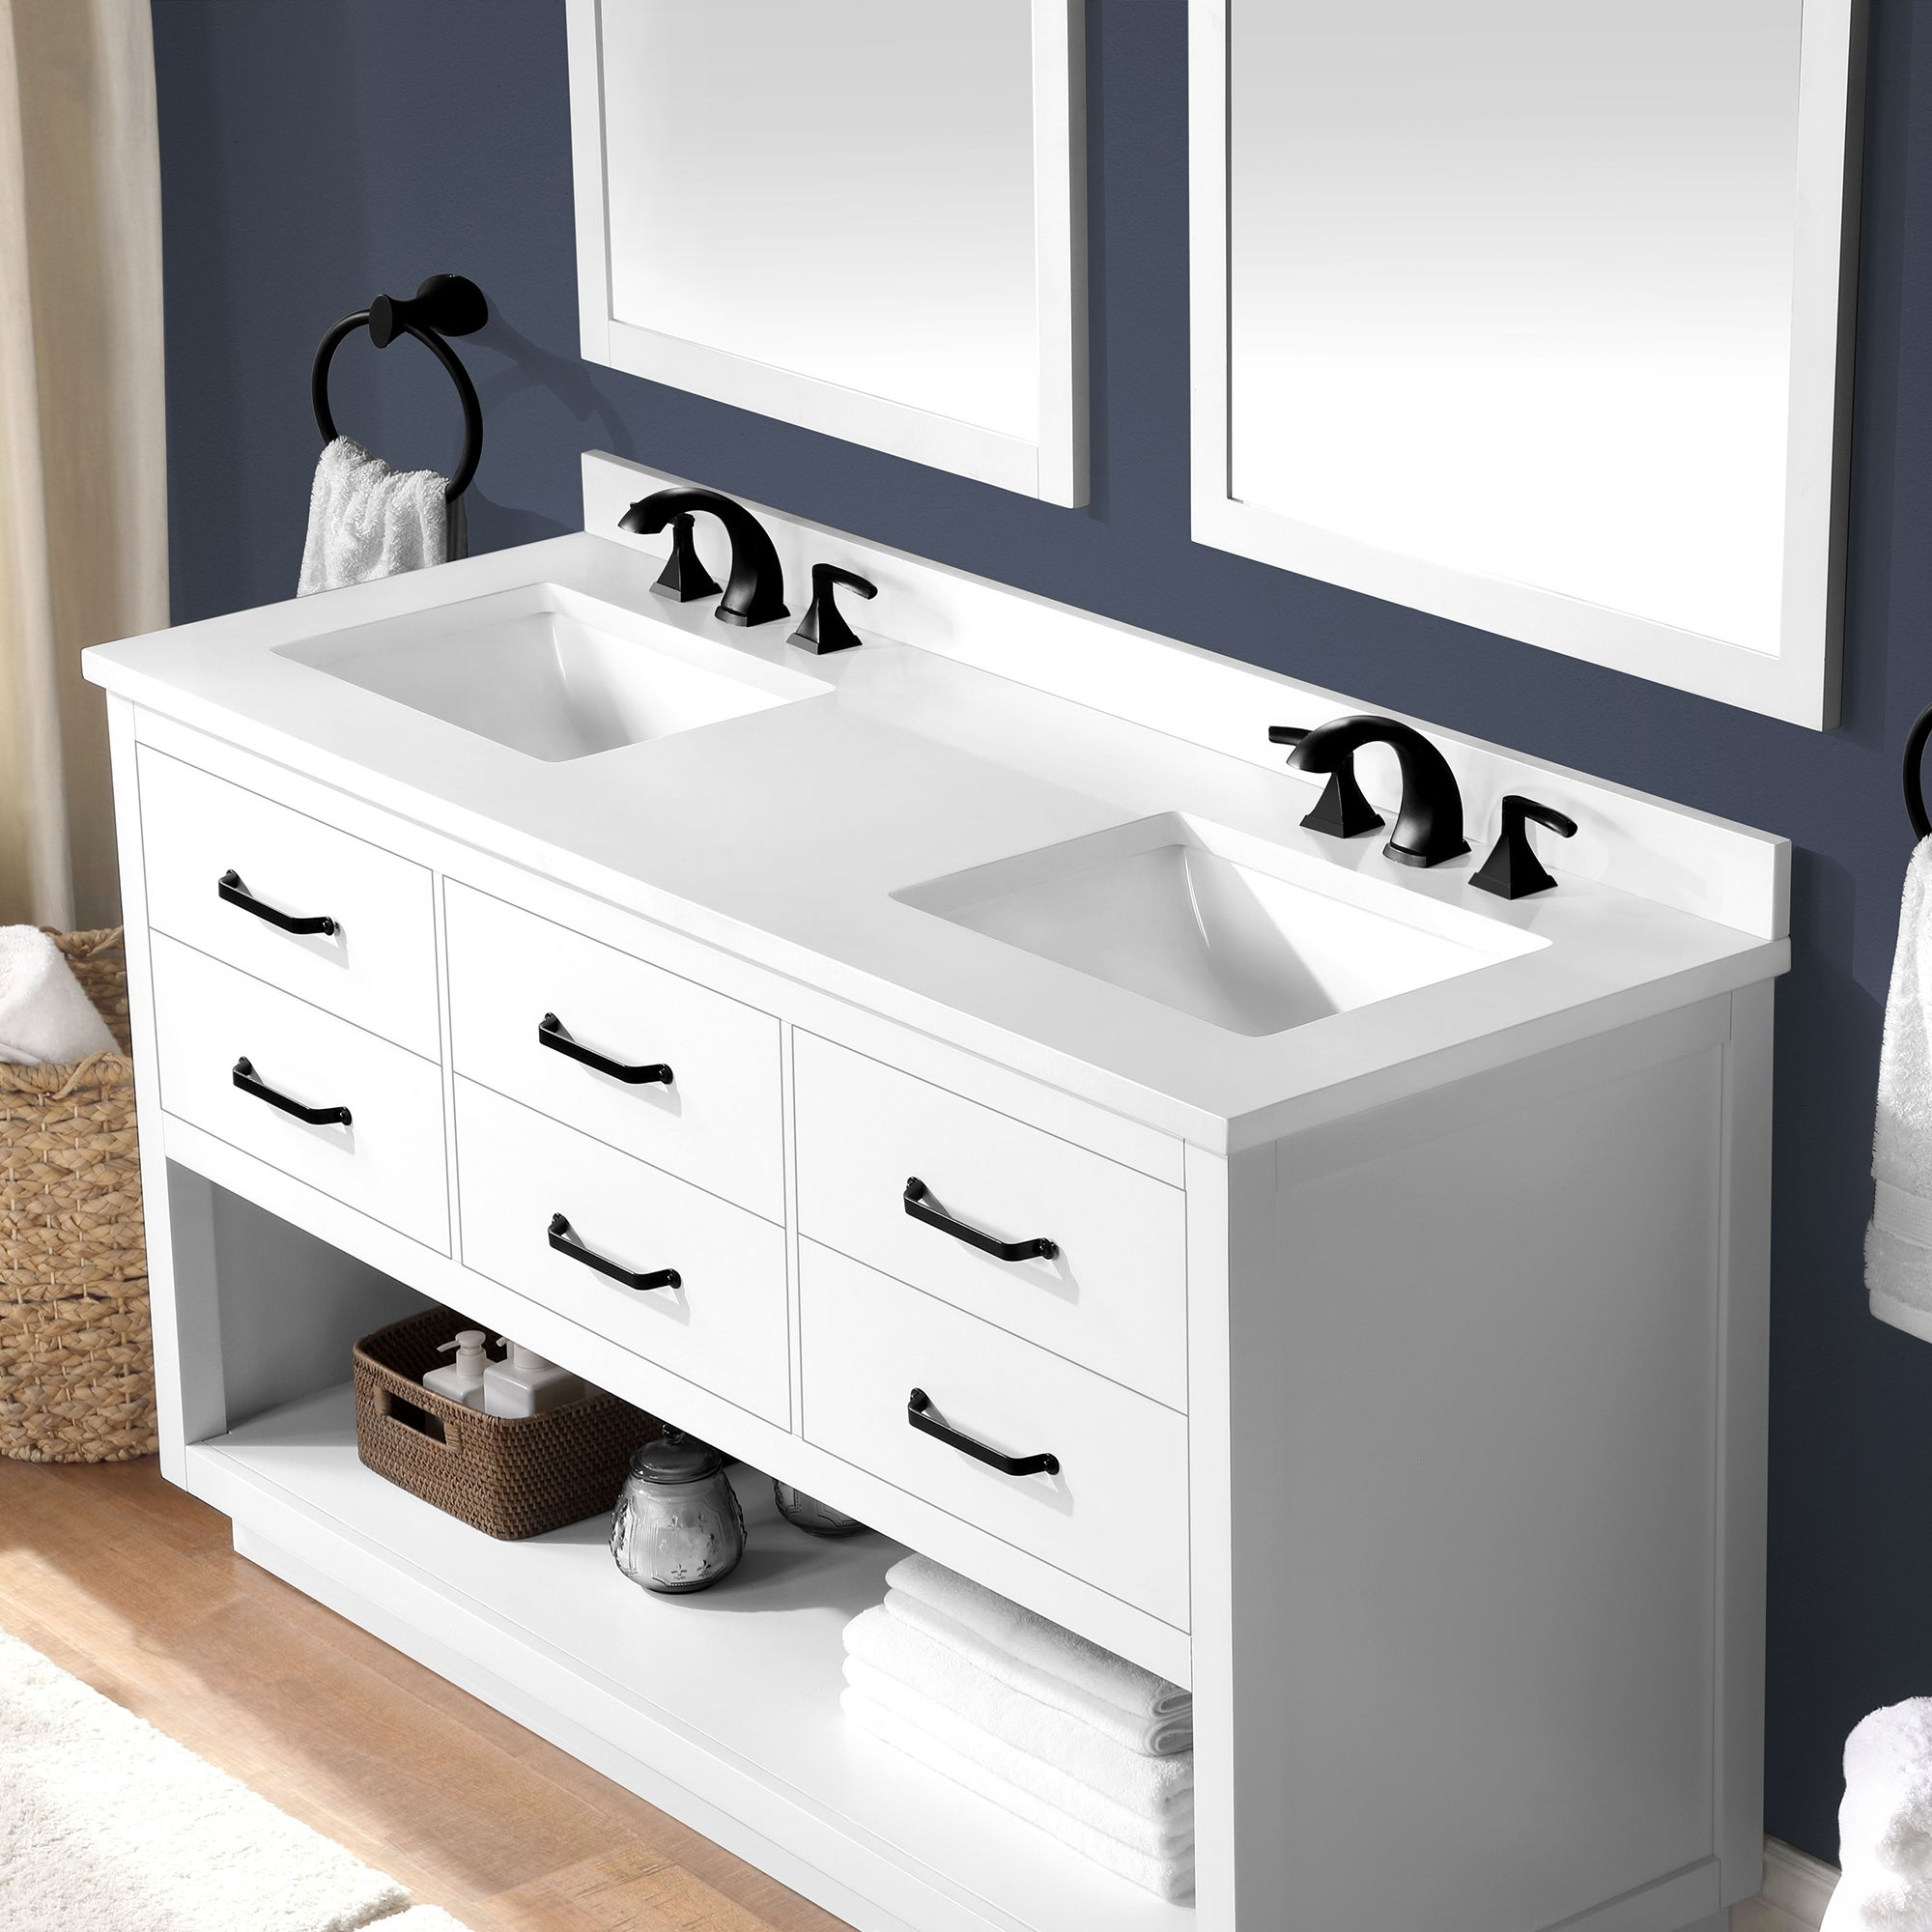 Ove Decors Carran 60 In Vanity White Finish And Black Hardware On Sale Overstock 32539757